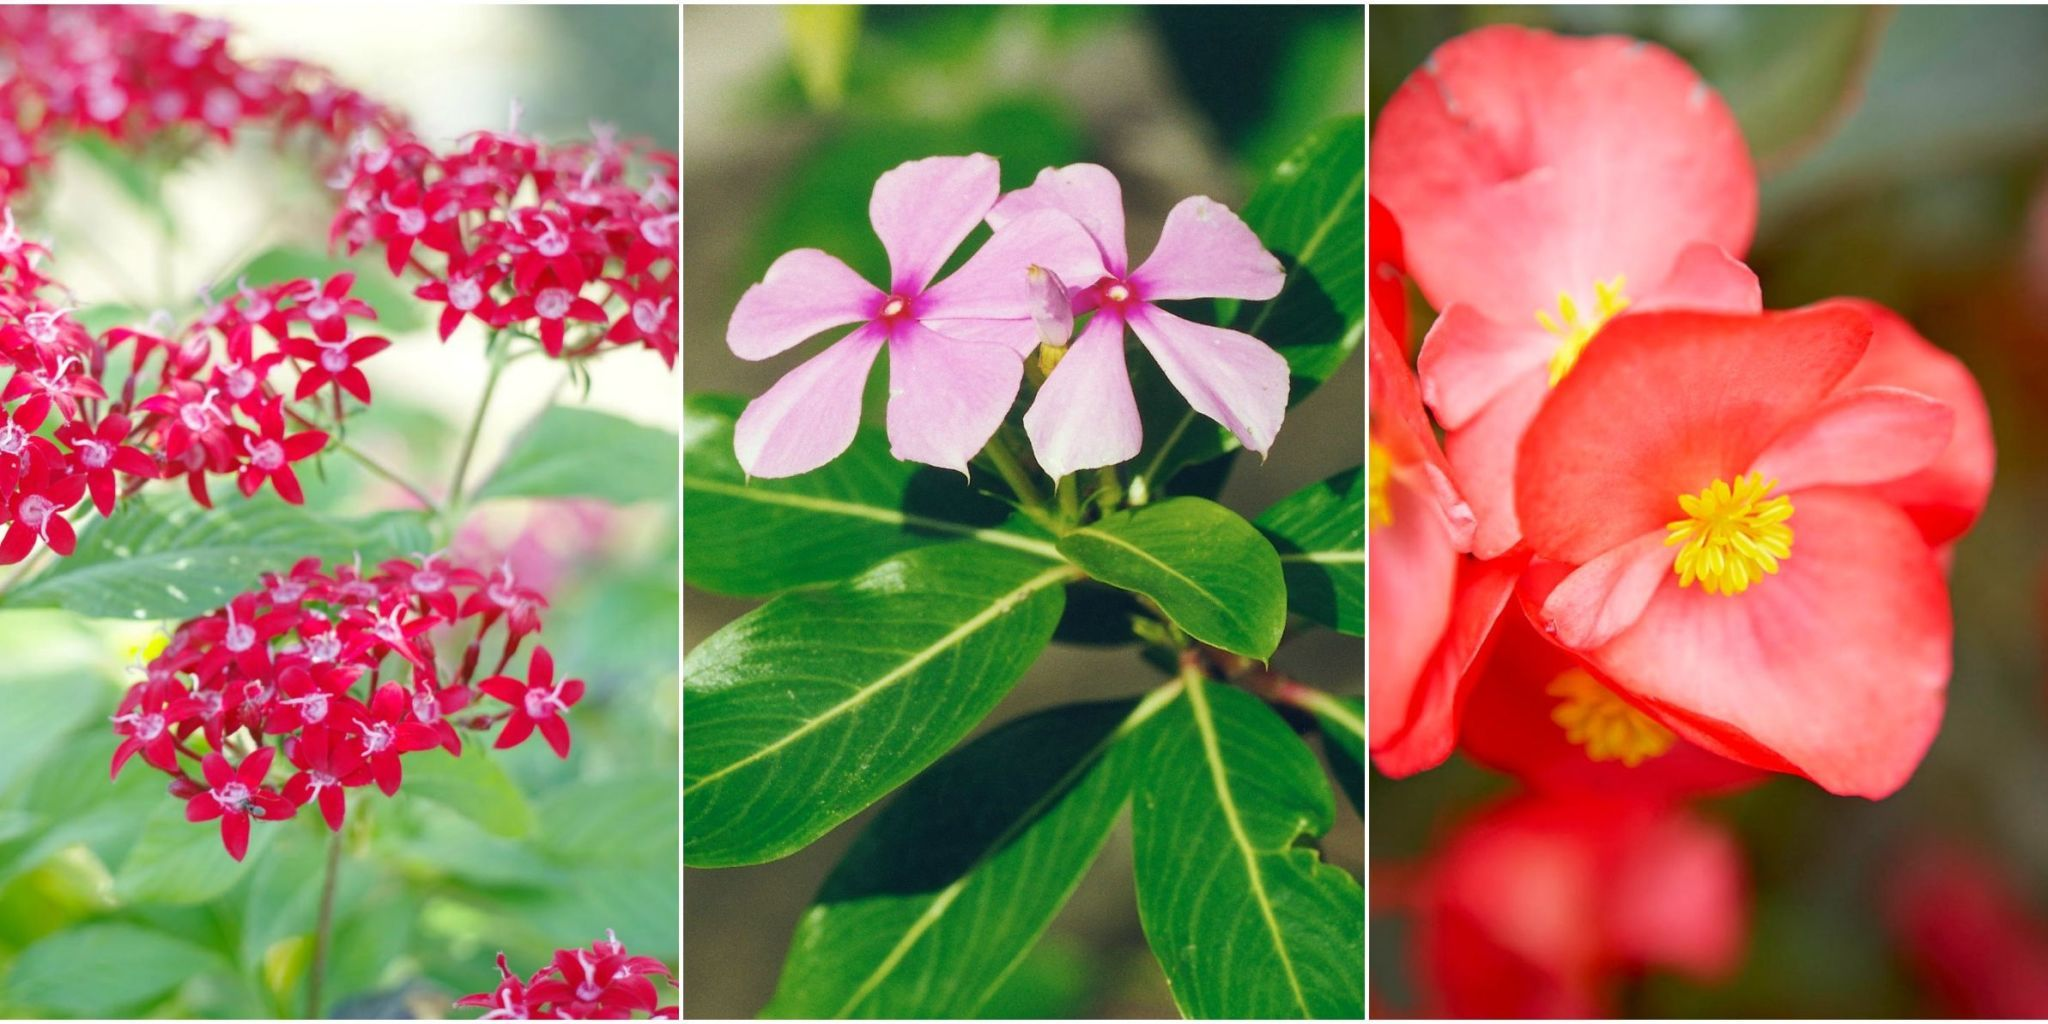 10 Heat-Tolerant Plants That Will Survive (And Thrive) This Brutal Summer